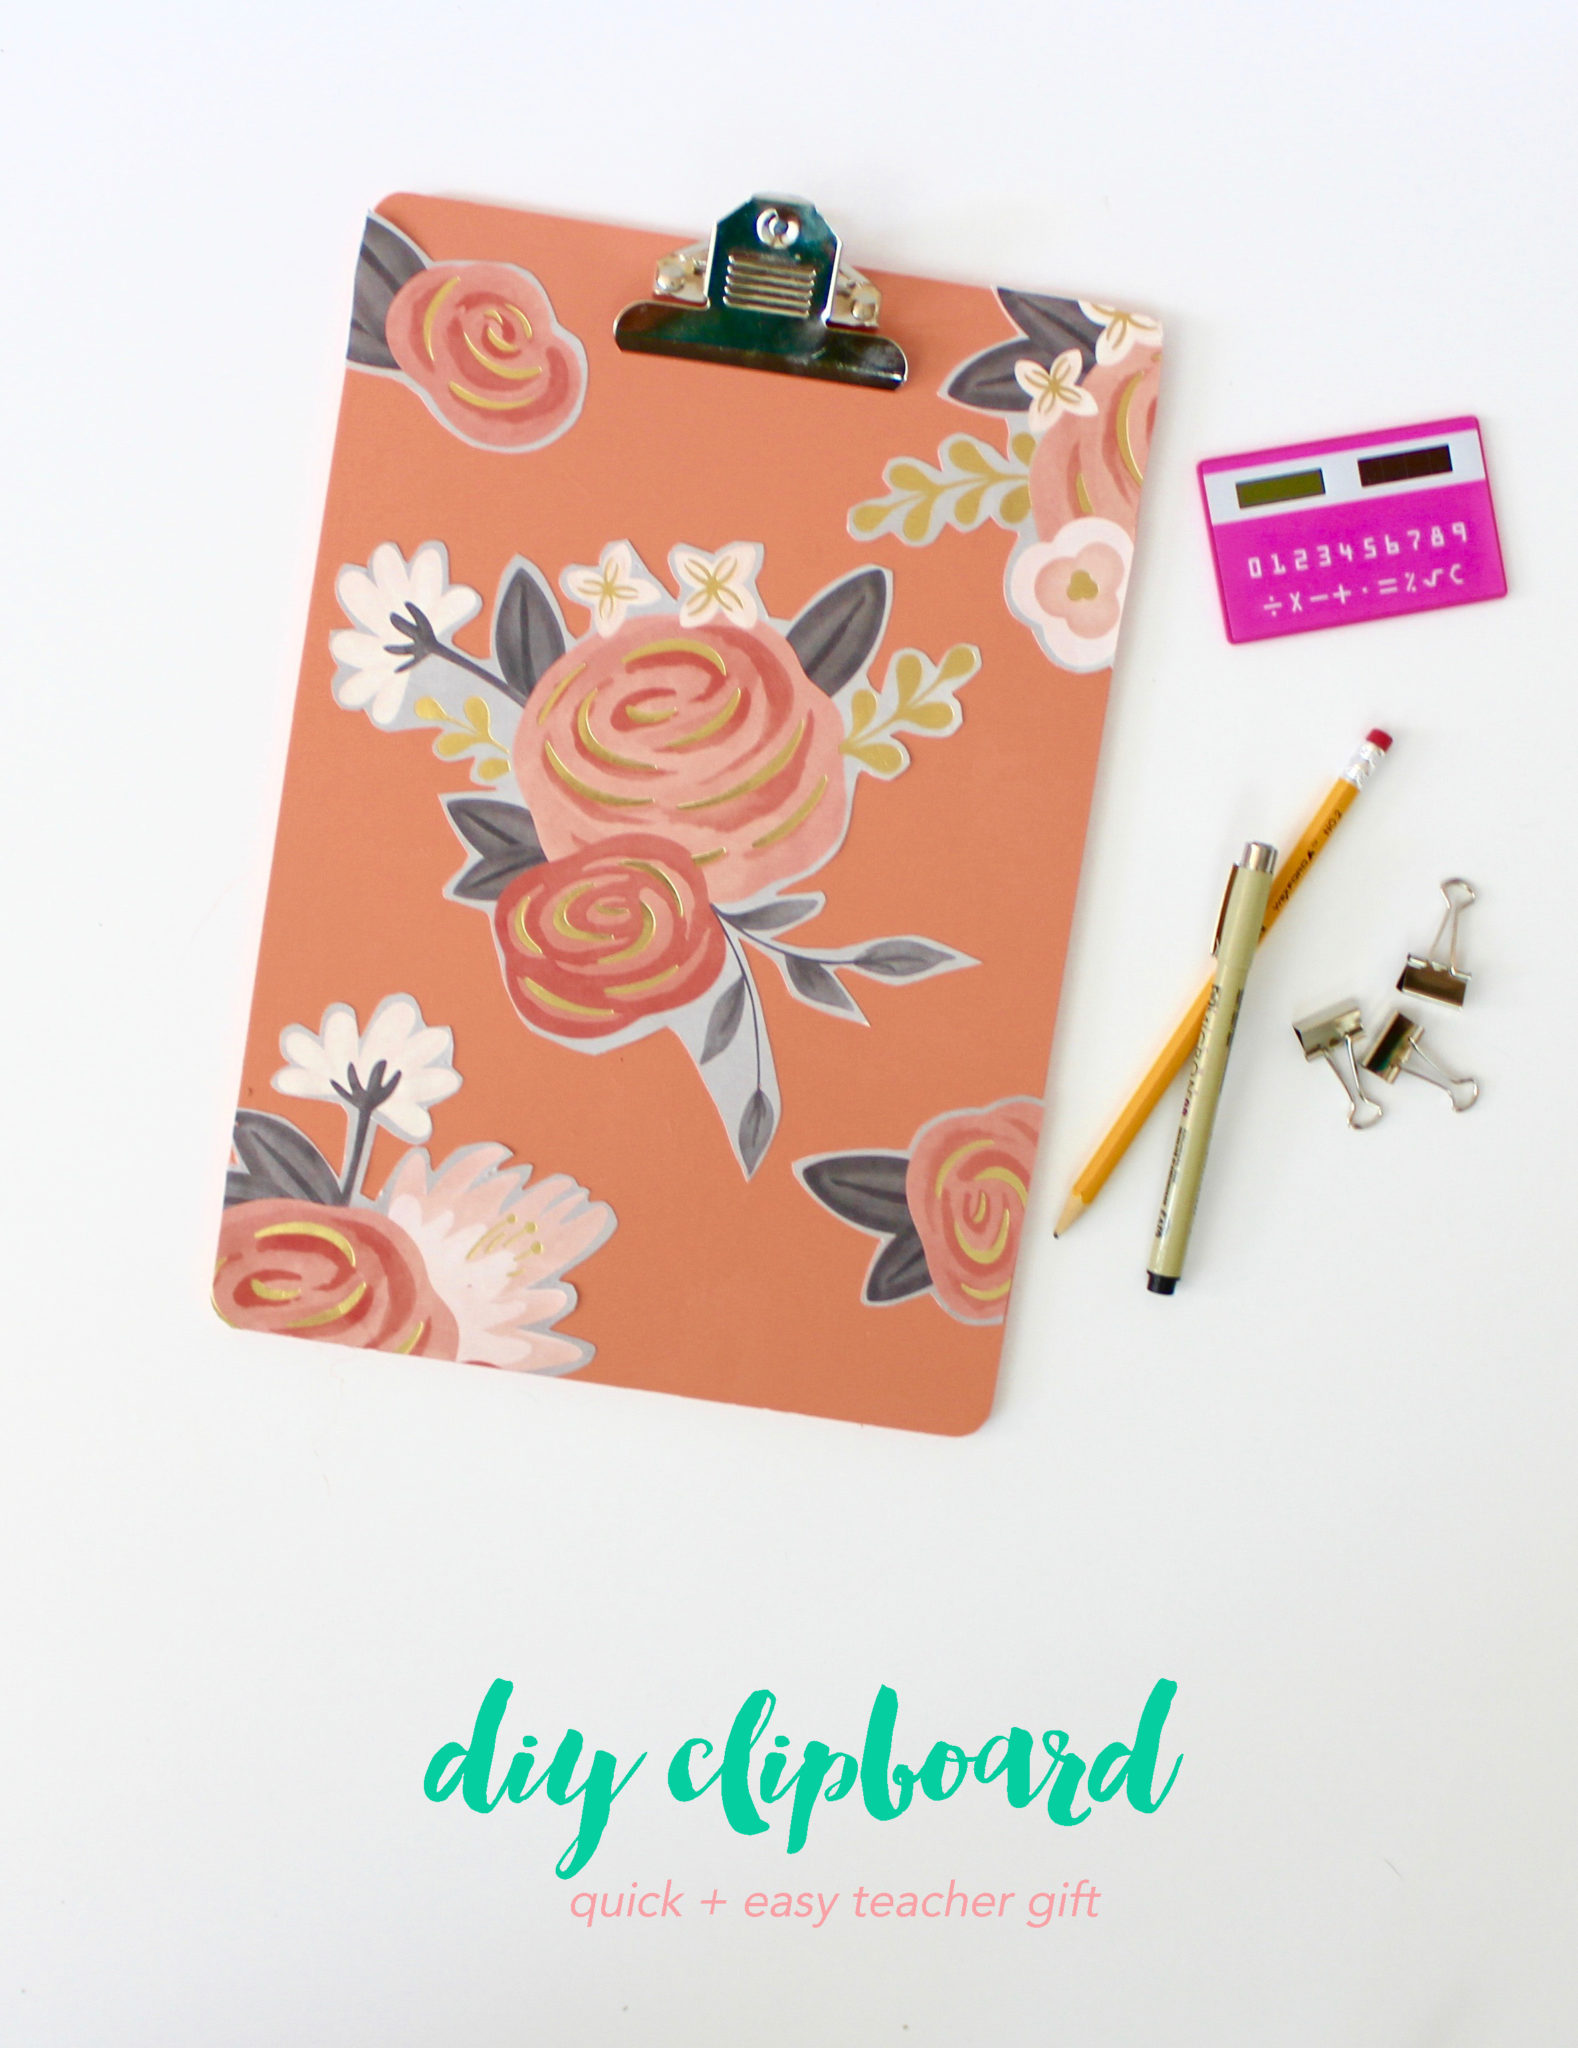 Back To School Gifts For Teachers Diy Clipboard